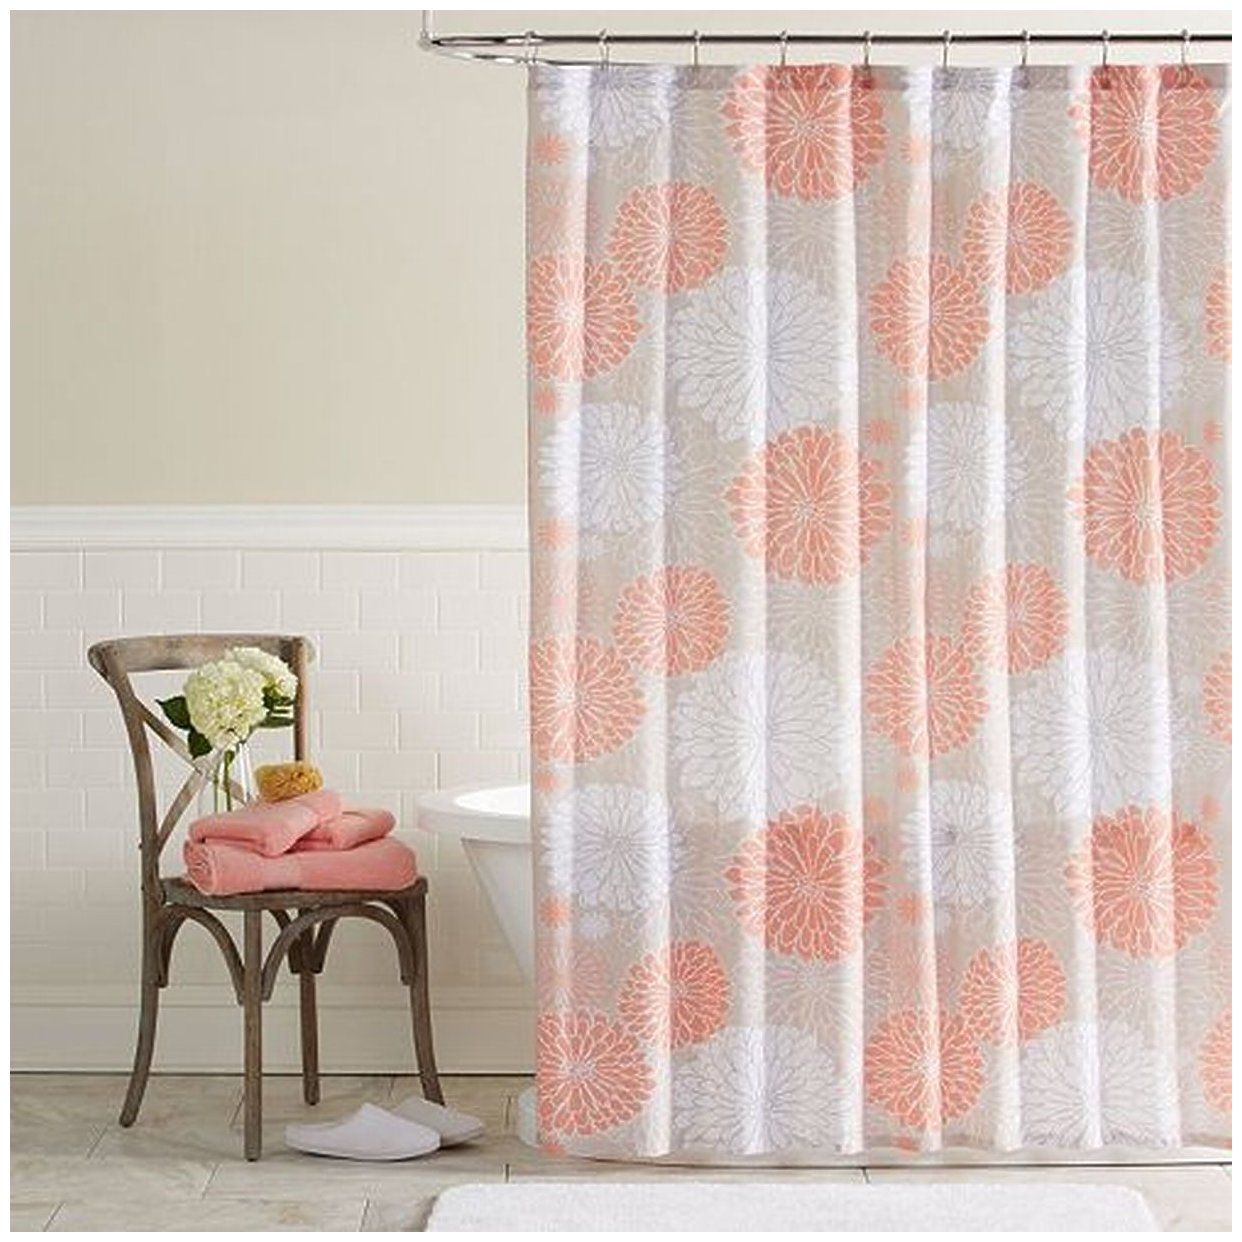 Priscilla Bathroom Shower Curtains • Shower Curtains Ideas